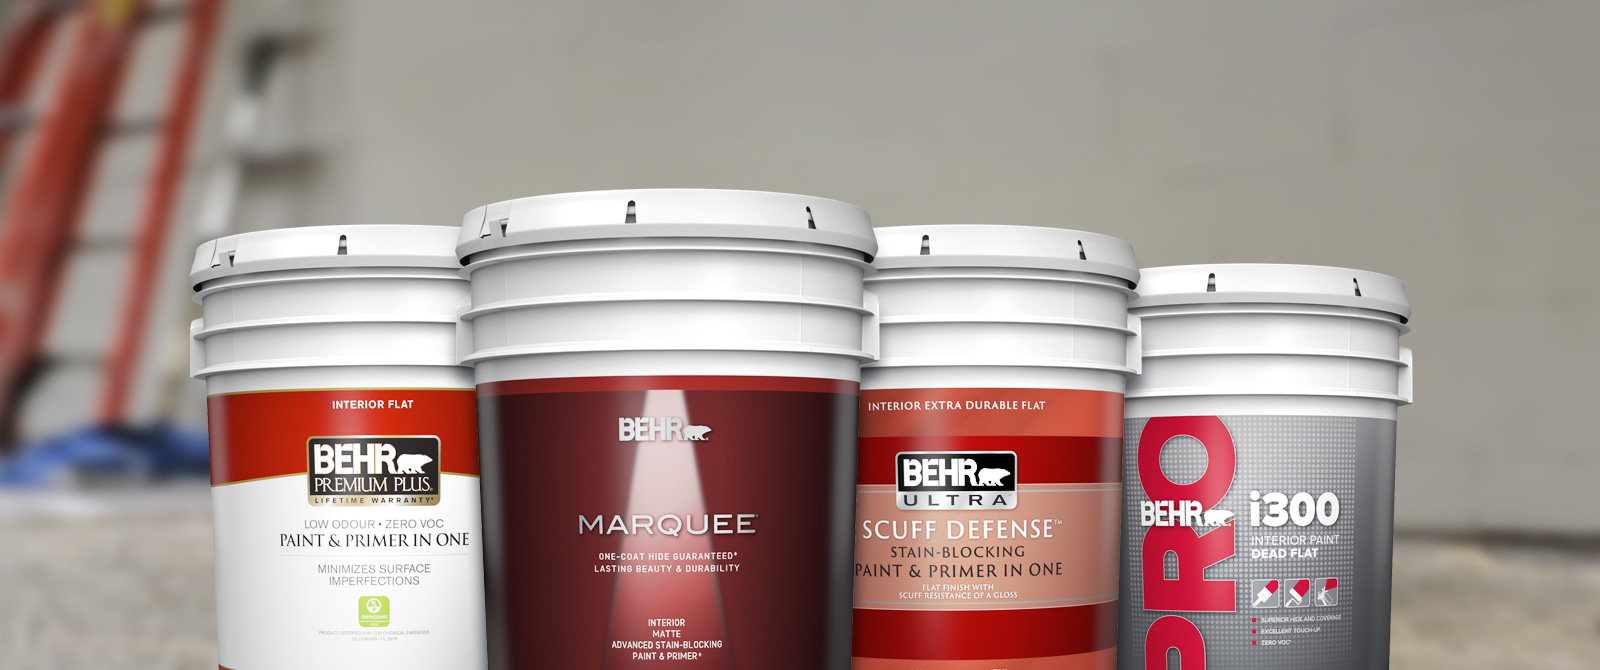 Landscape View of  a 5 gallon product cluster shot of BEHR PREMIUM Interior Flat, BEHR MARQUEE Interior Matte, BEHR ULTRA Interior Matte, and BEHR i300 Dead Flat. In the background, there is a ladder leaning on an unpainted interior wall.